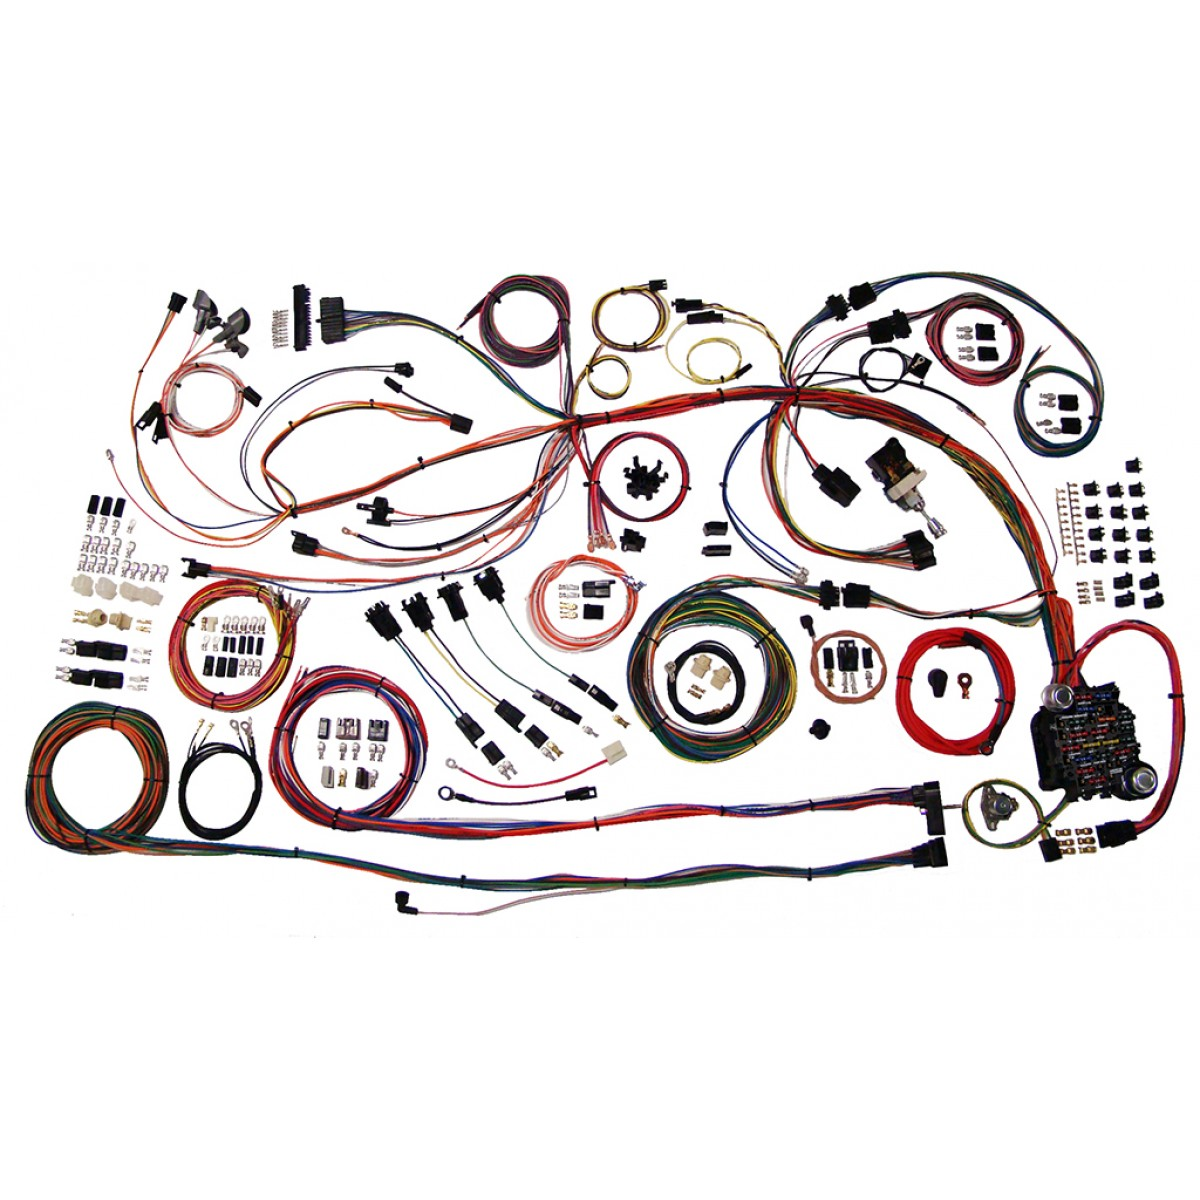 hight resolution of complete wiring harness kit 1968 1969 el camino part 510158